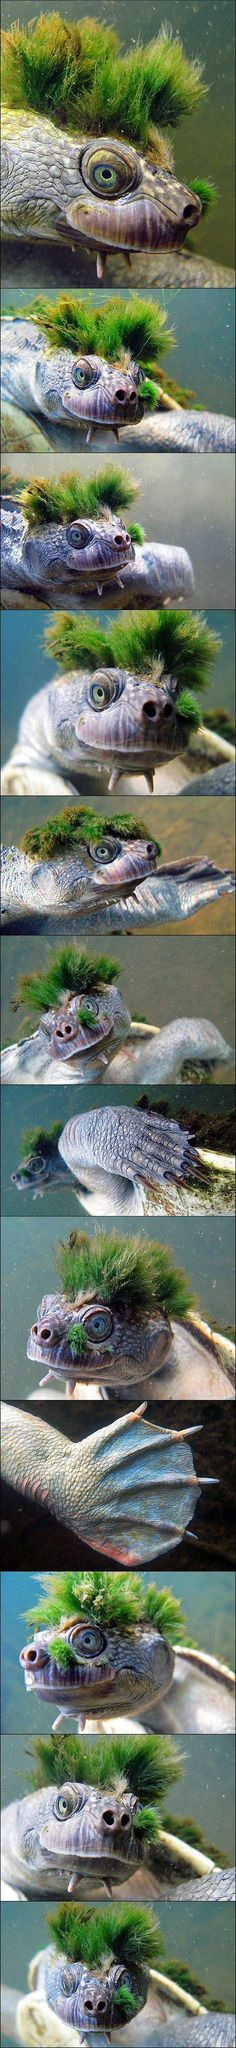 Turtle with a mohawk!